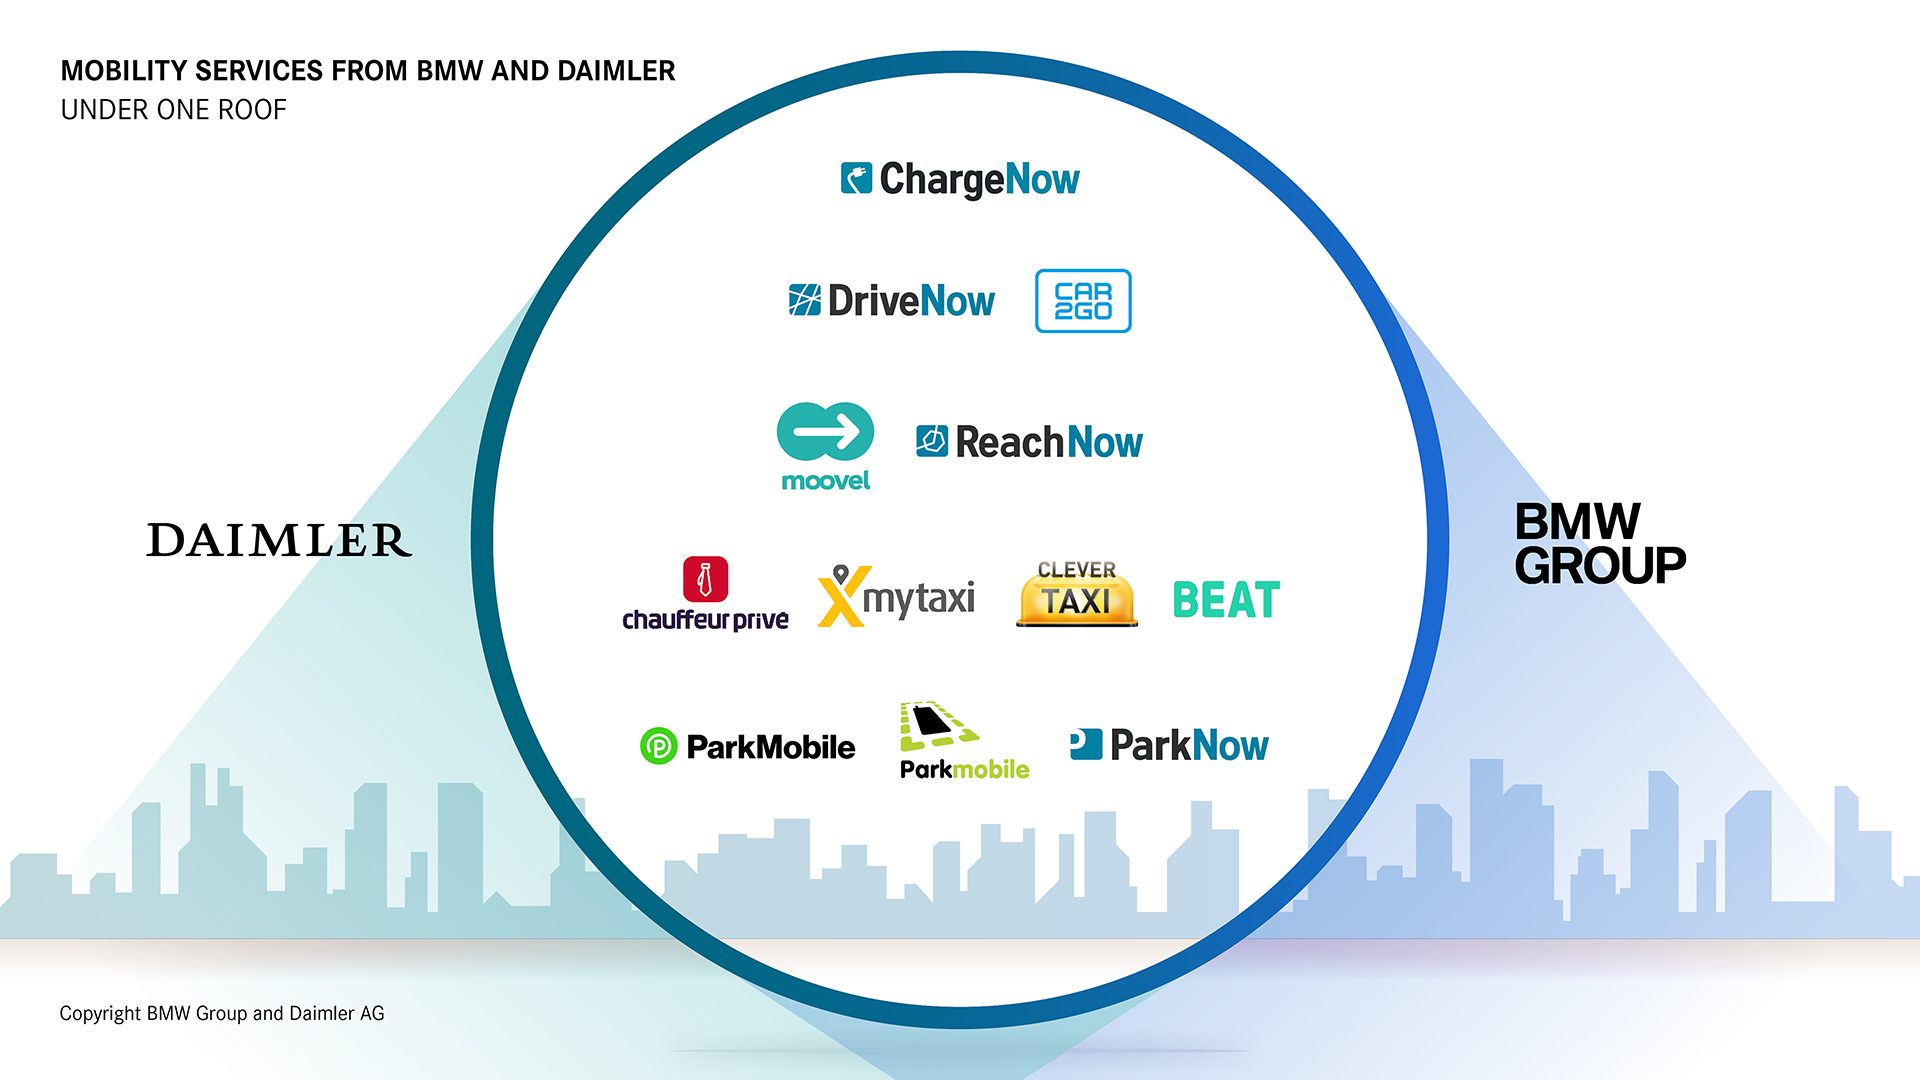 181220-BMW-Group-and-Daimler-AG-are-creating-a-holistic-intelligent-and-seamless-ecosystem-of-mobility-services-1